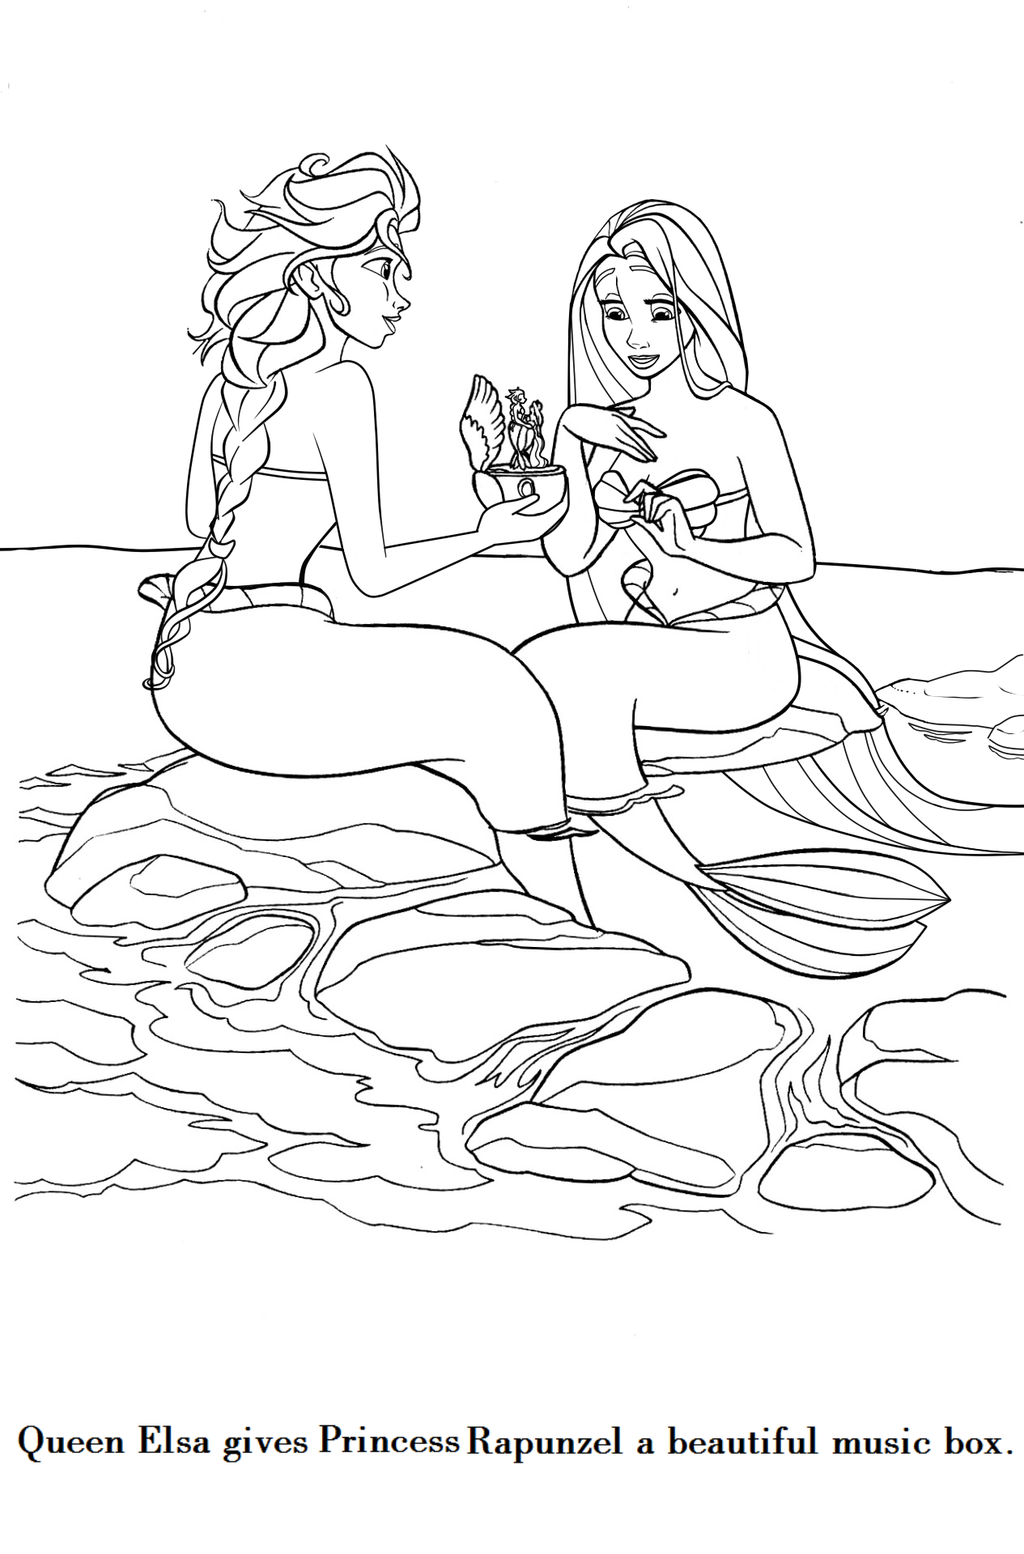 coloring page elsaxrapunzel mermaids by cancersyndromedits on